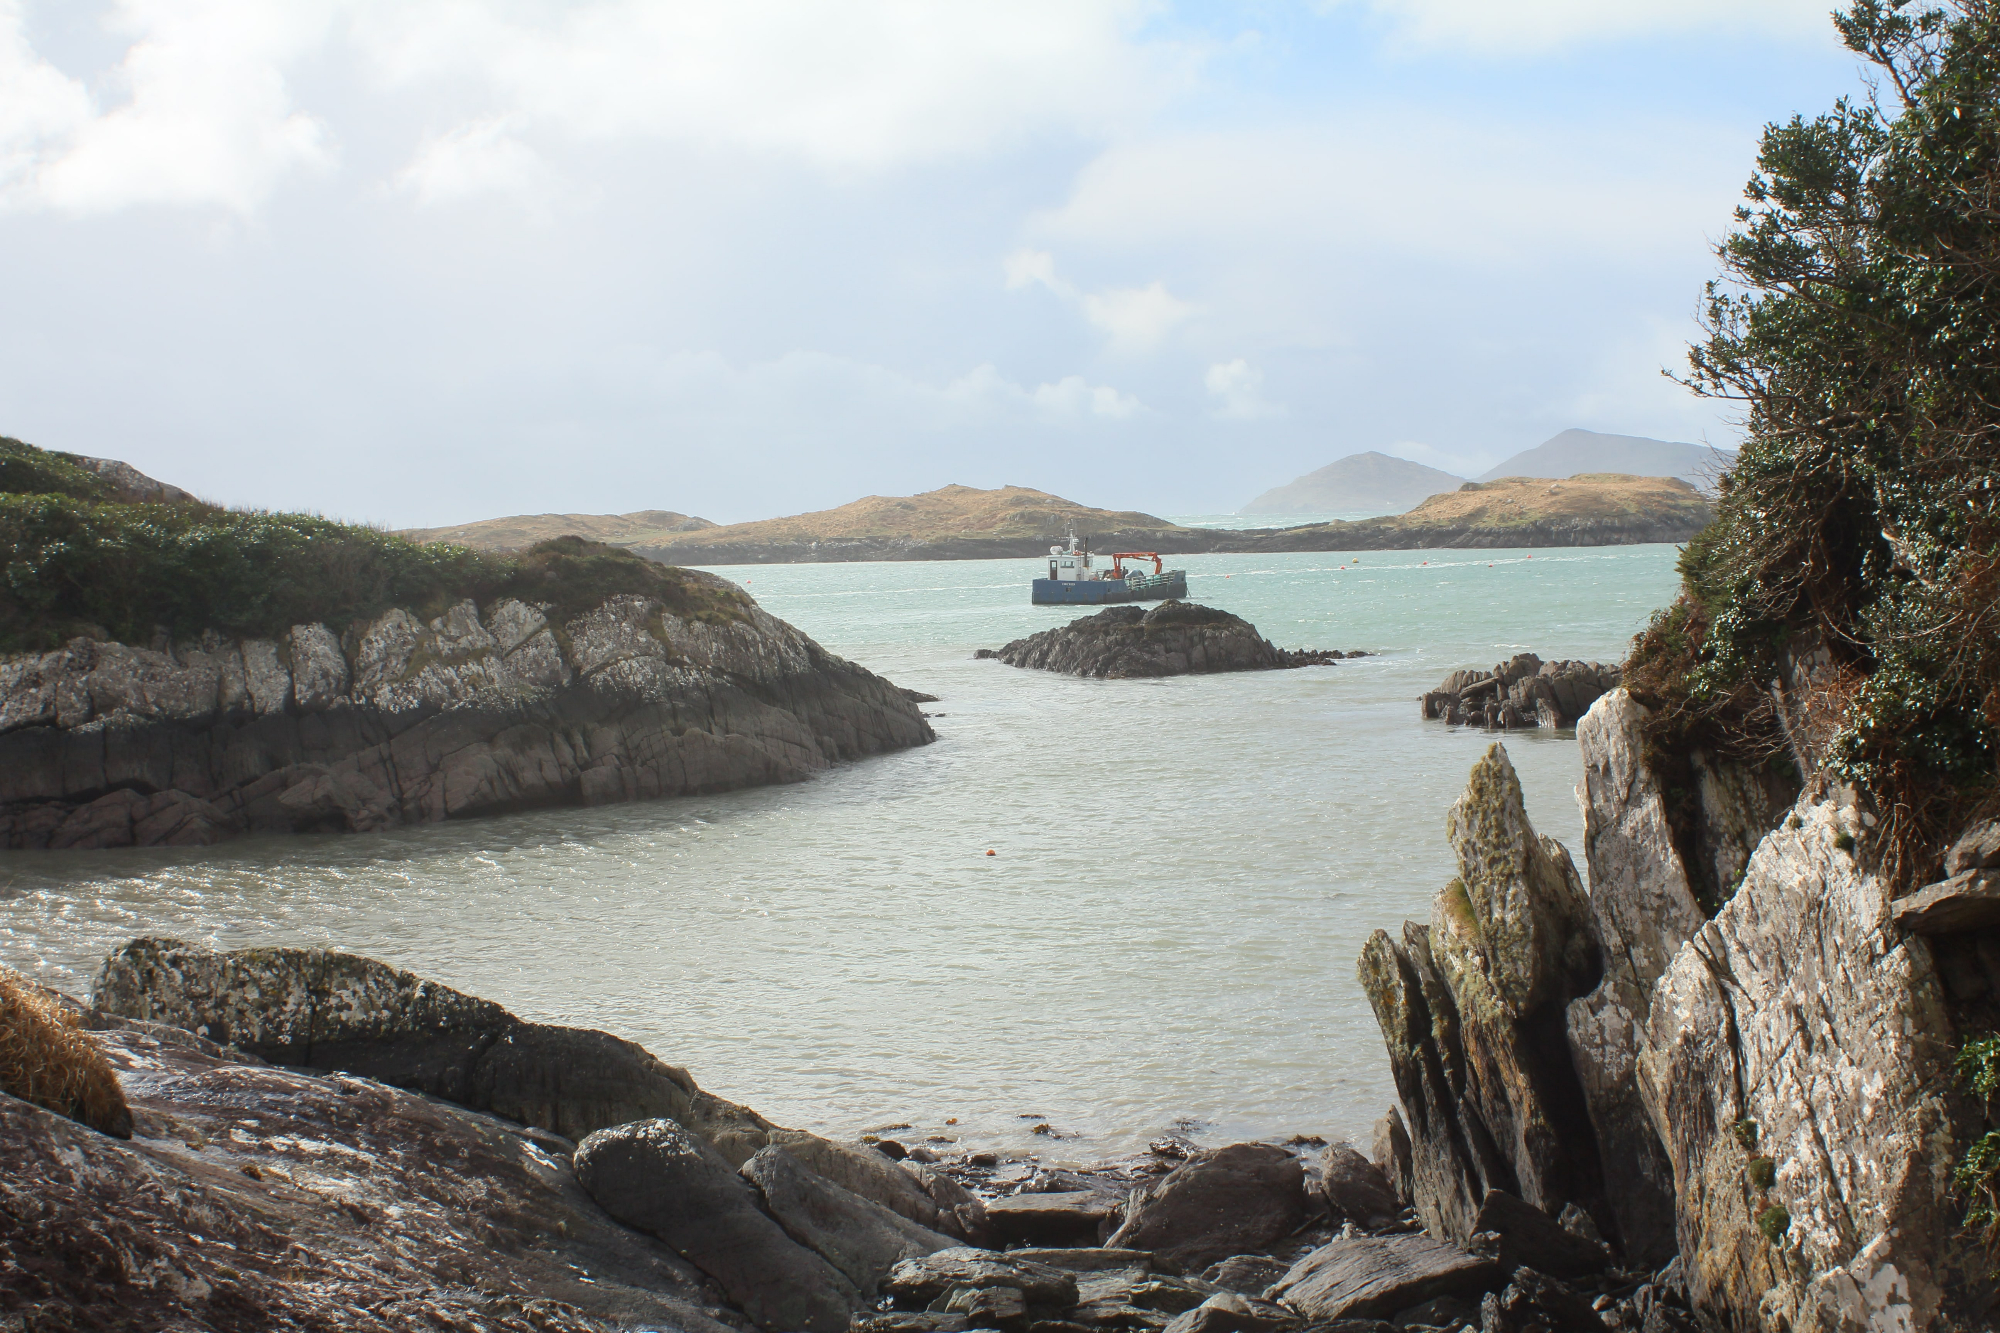 The view out over Derrynane Bay